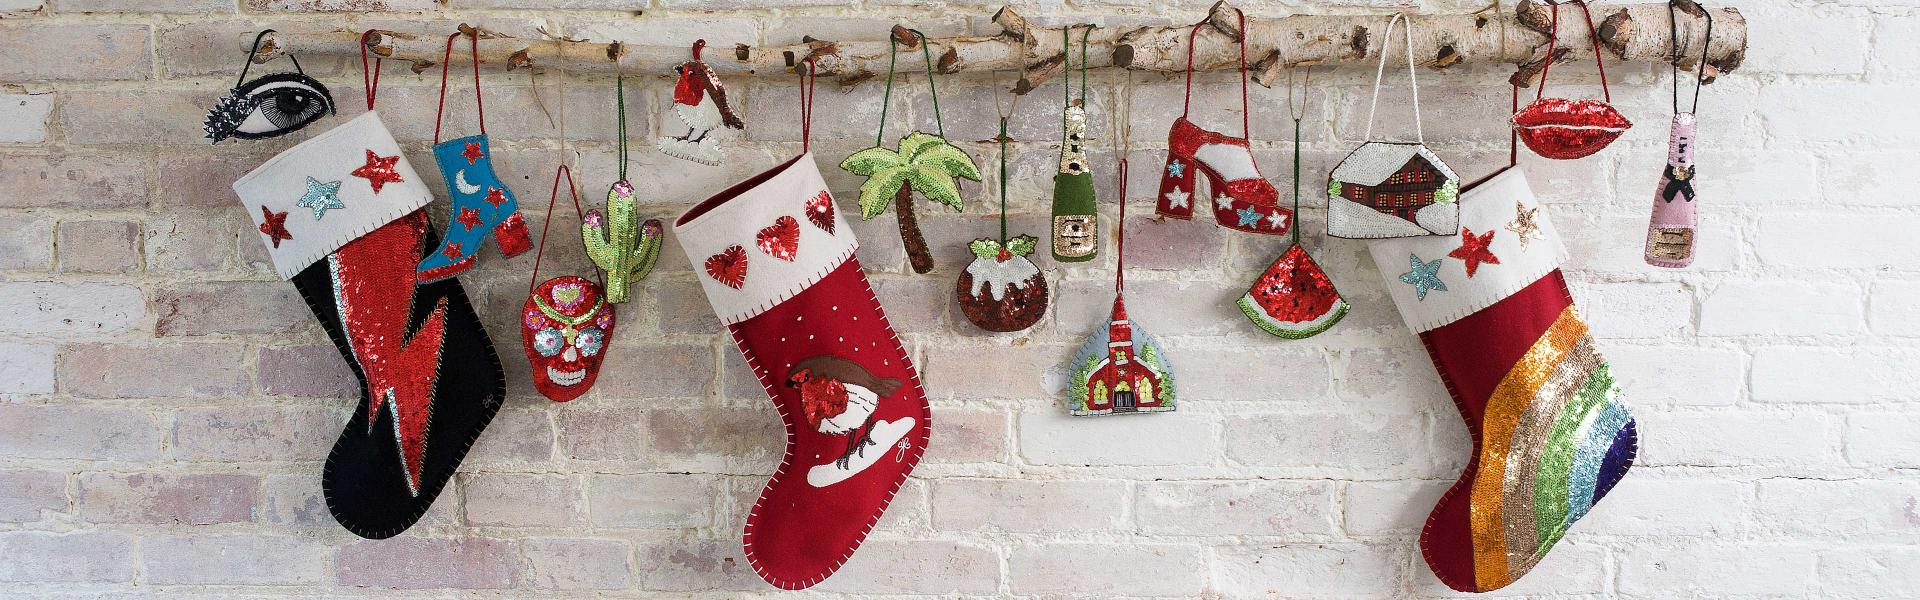 History Of Christmas Stockings.The History Of Christmas Presents In Britain Art Culture